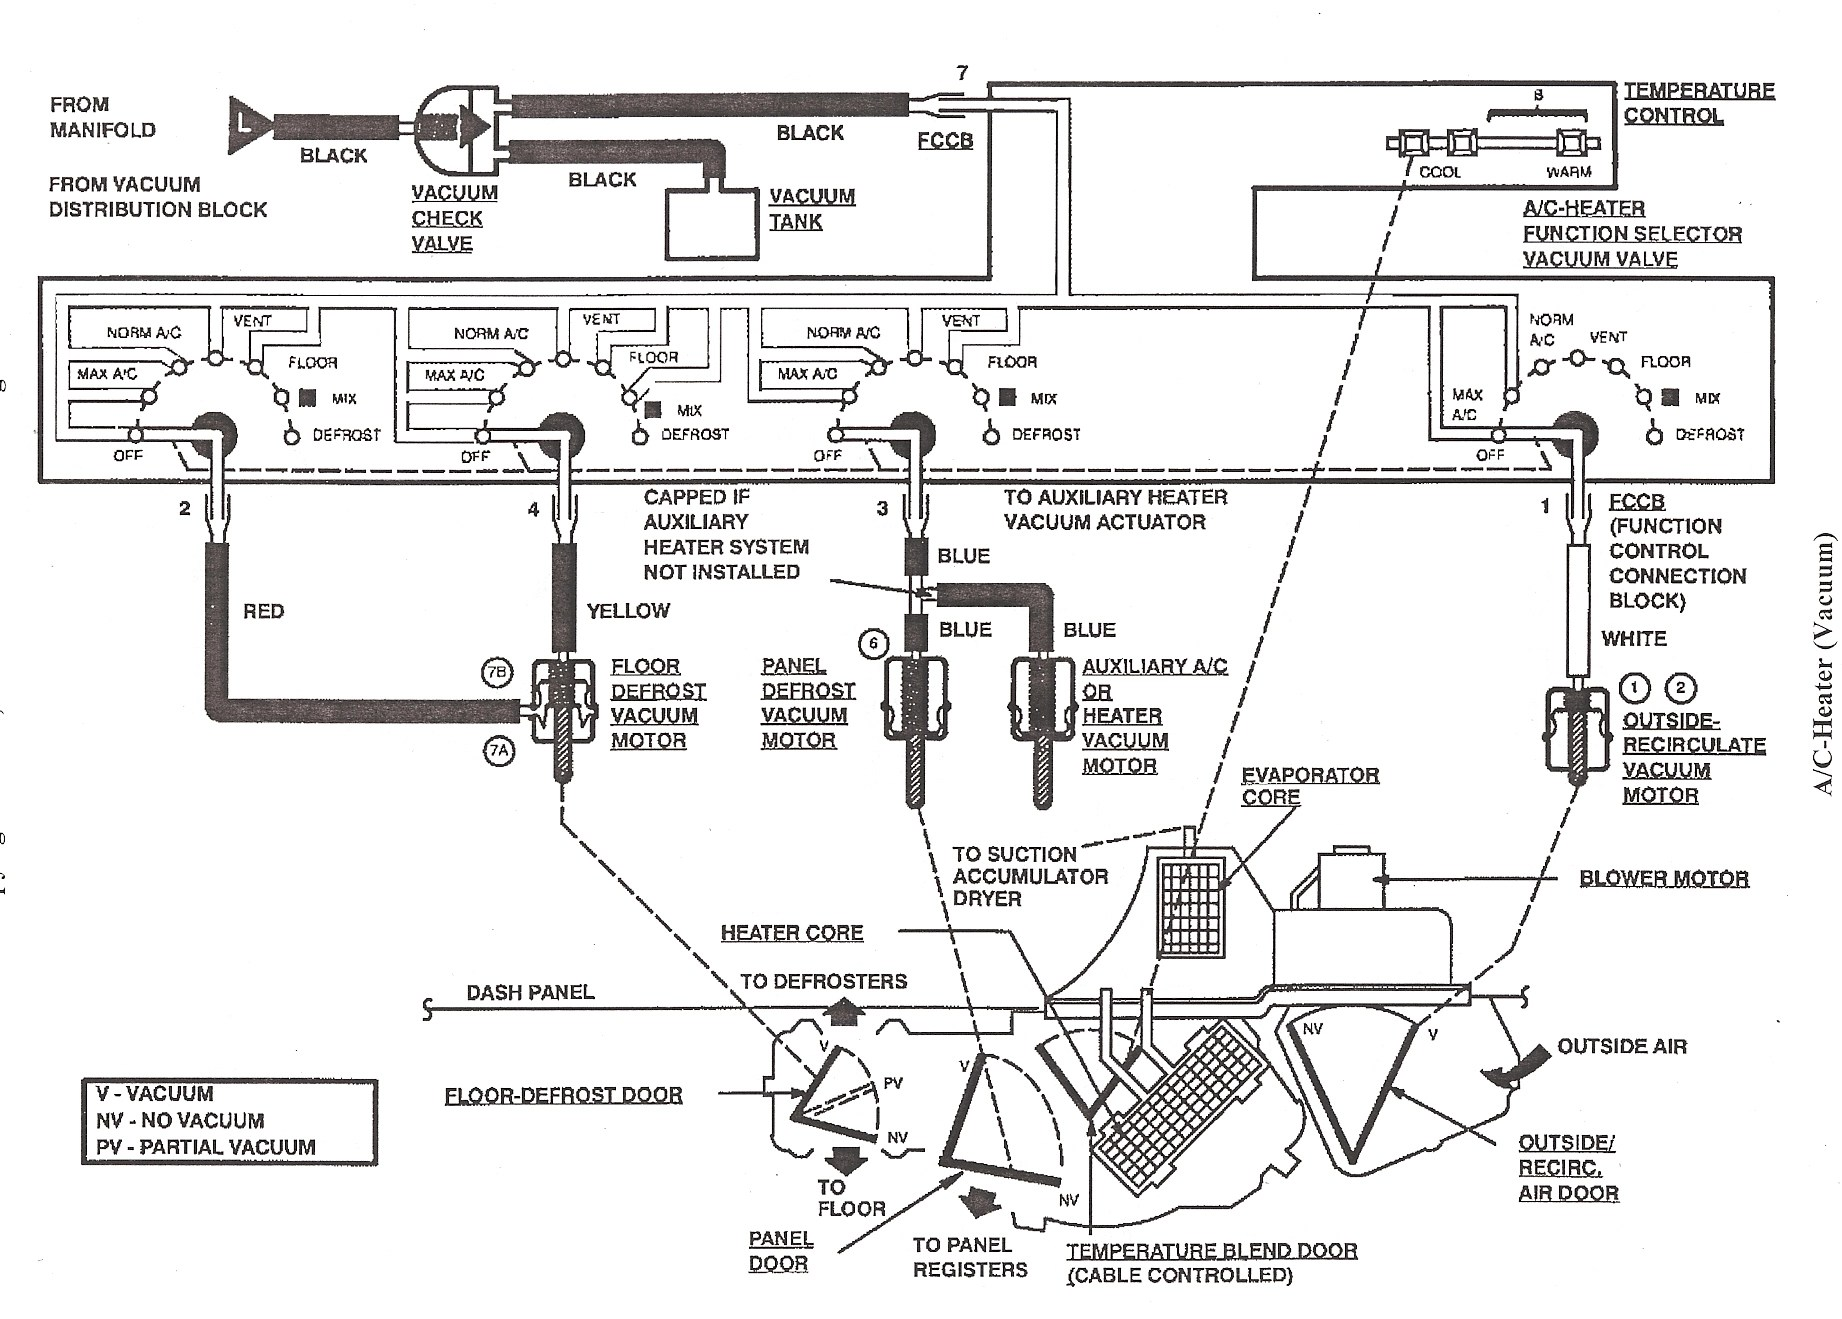 hight resolution of 2013 ford edge engine vacuum diagrams bull wiring diagram for